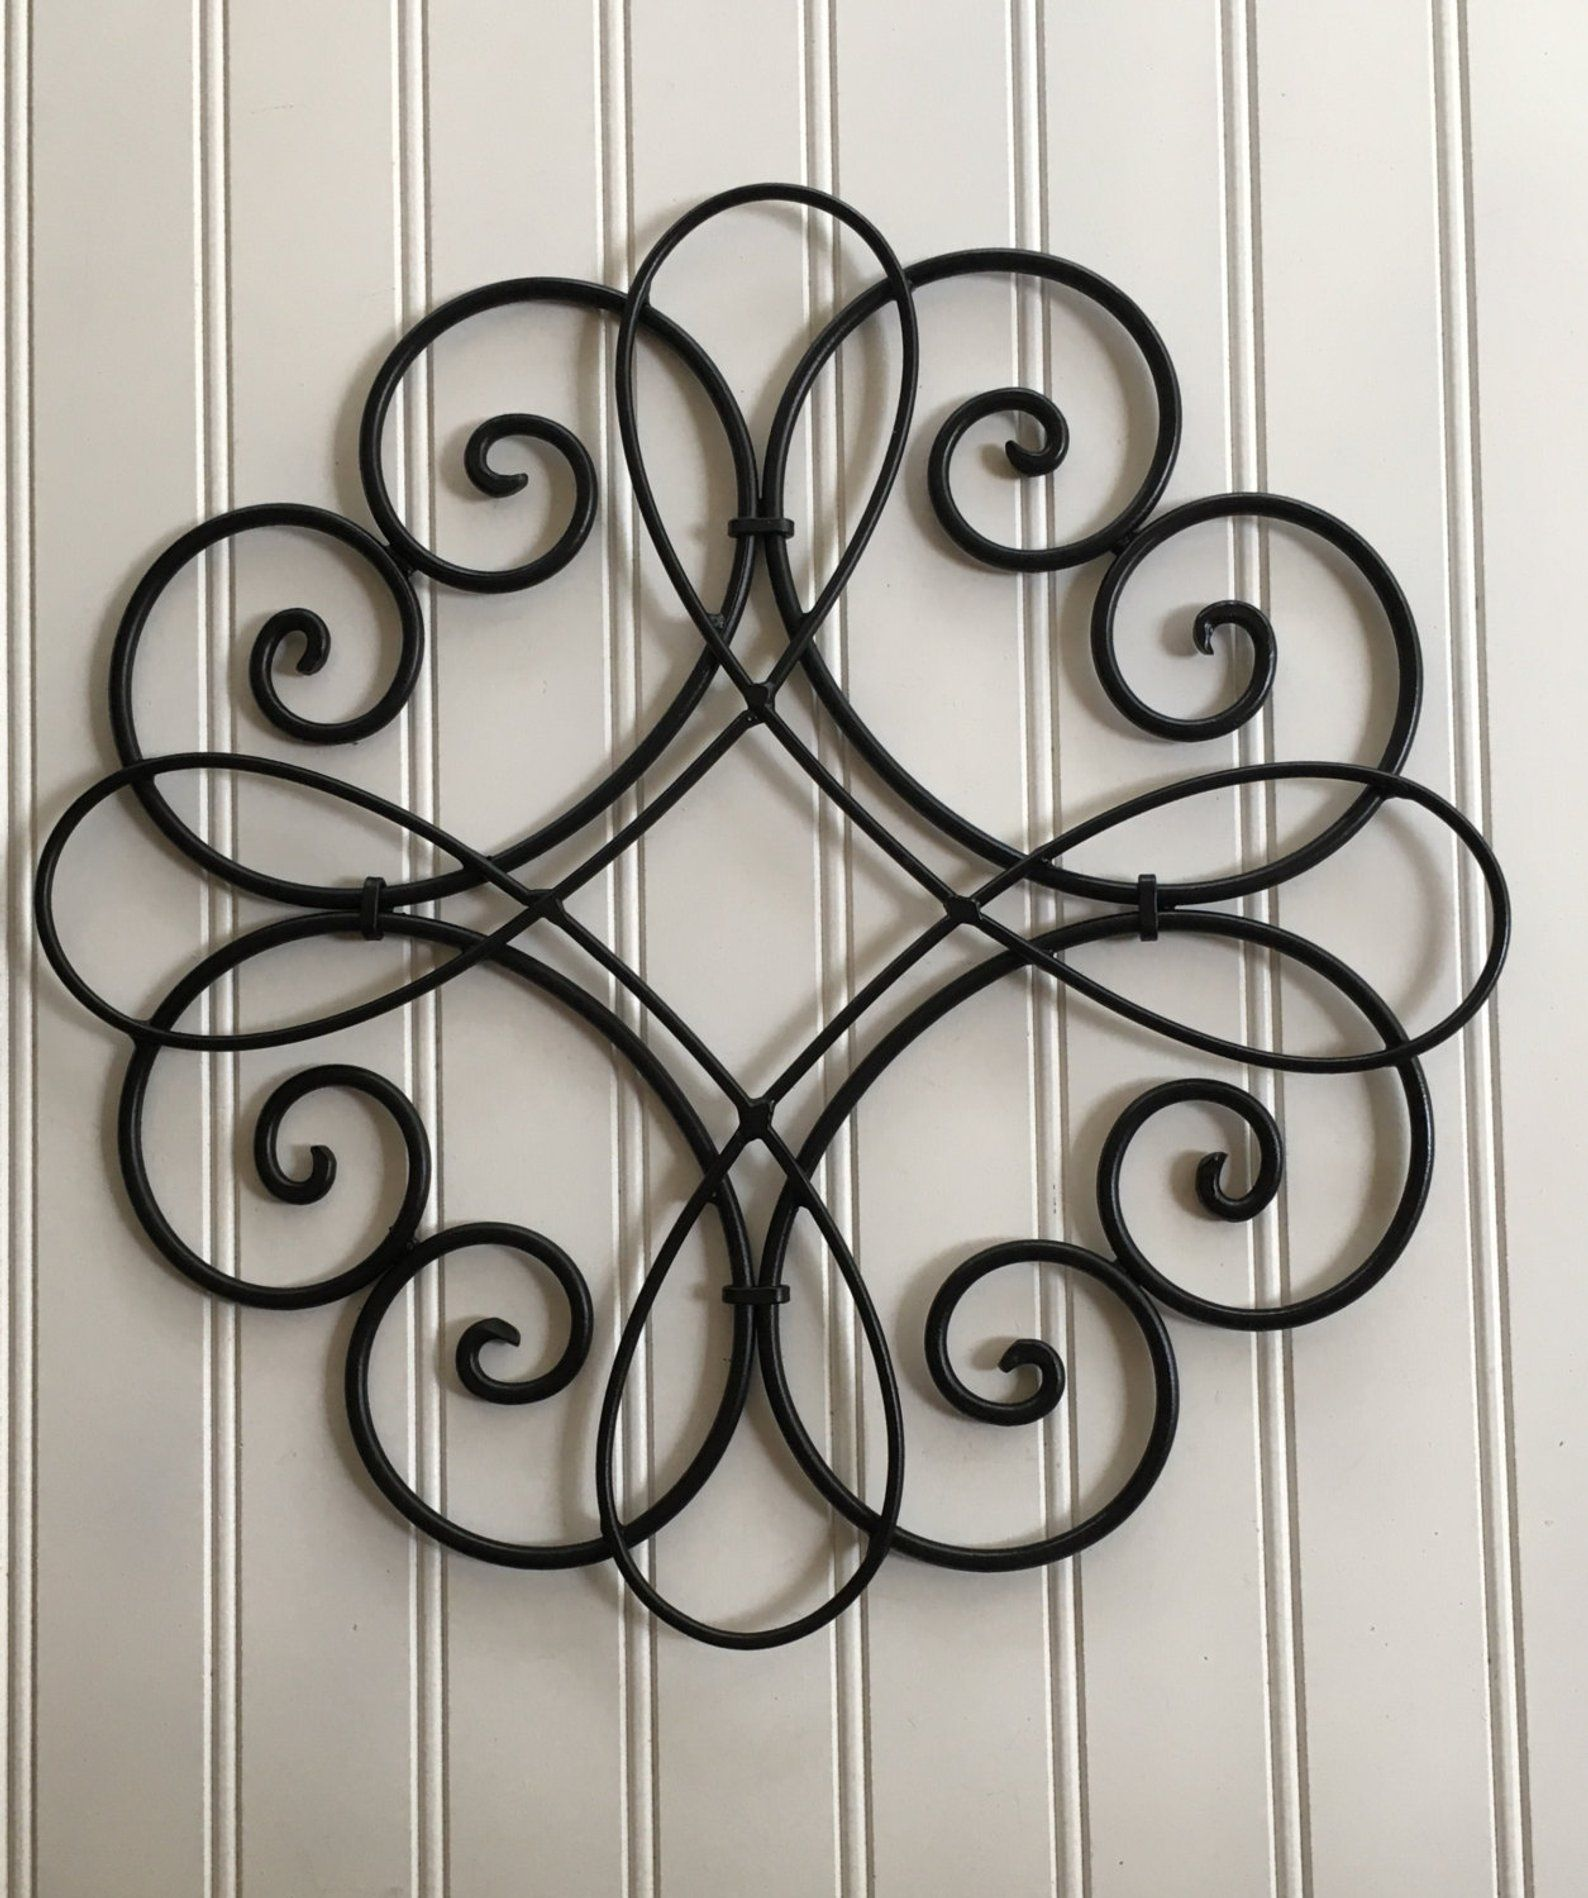 Design Ideas For Wrought Iron Project Nikki Brehm For In Between